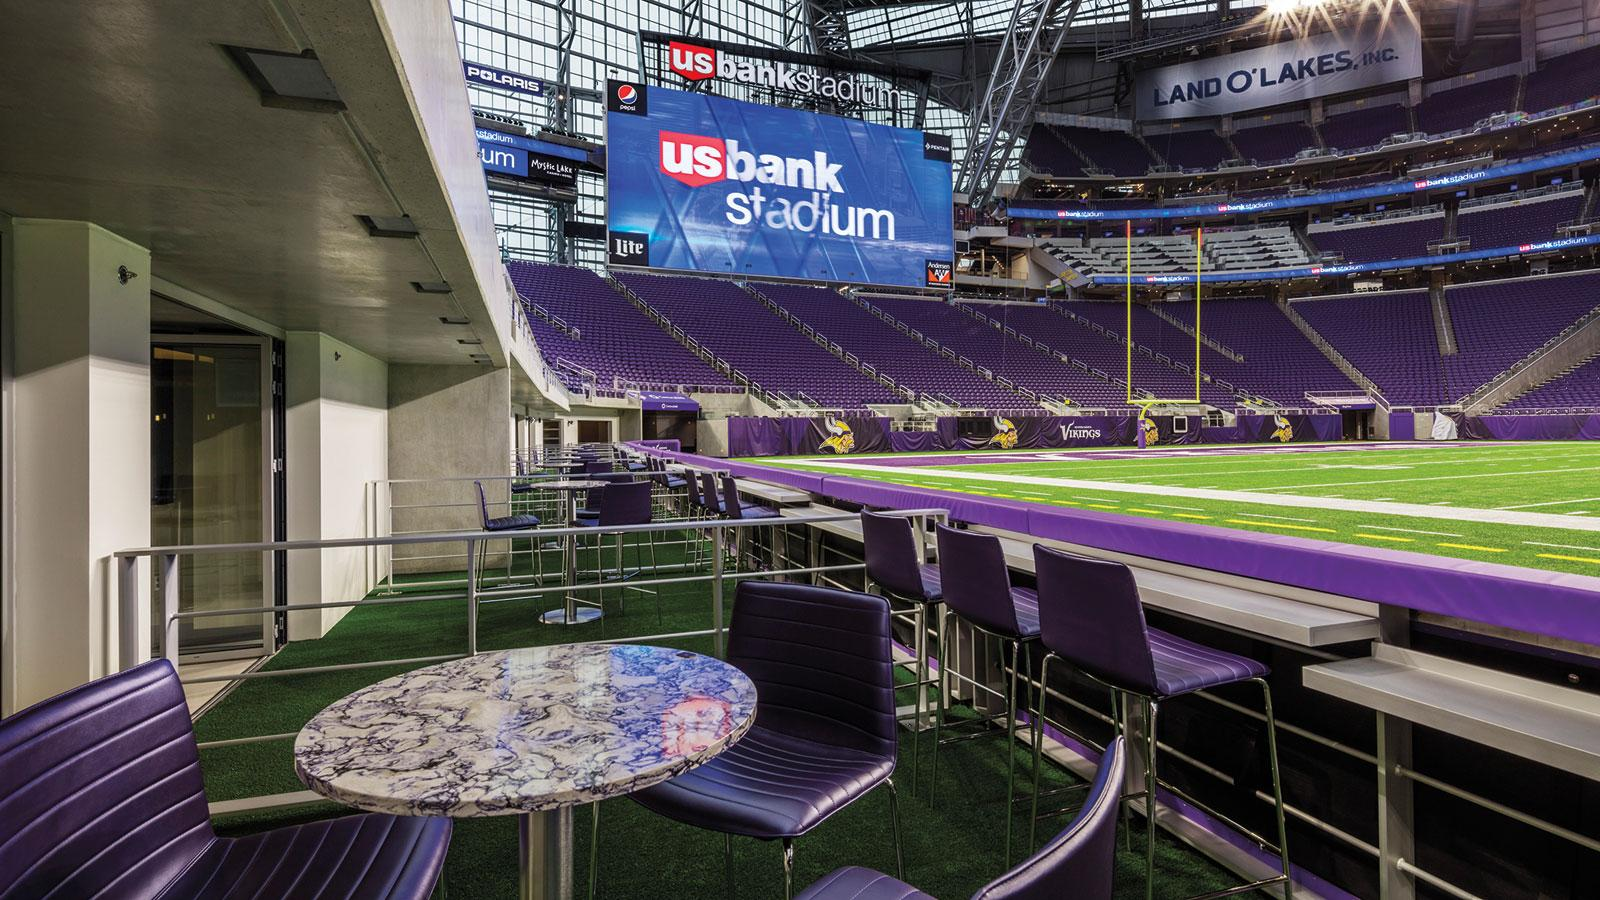 U.S. Bank Stadium's premium offerings include the luxurious Turf Club Suites, which put fans 25 feet from the playing  eld, among the closest seats in all of the NFL.